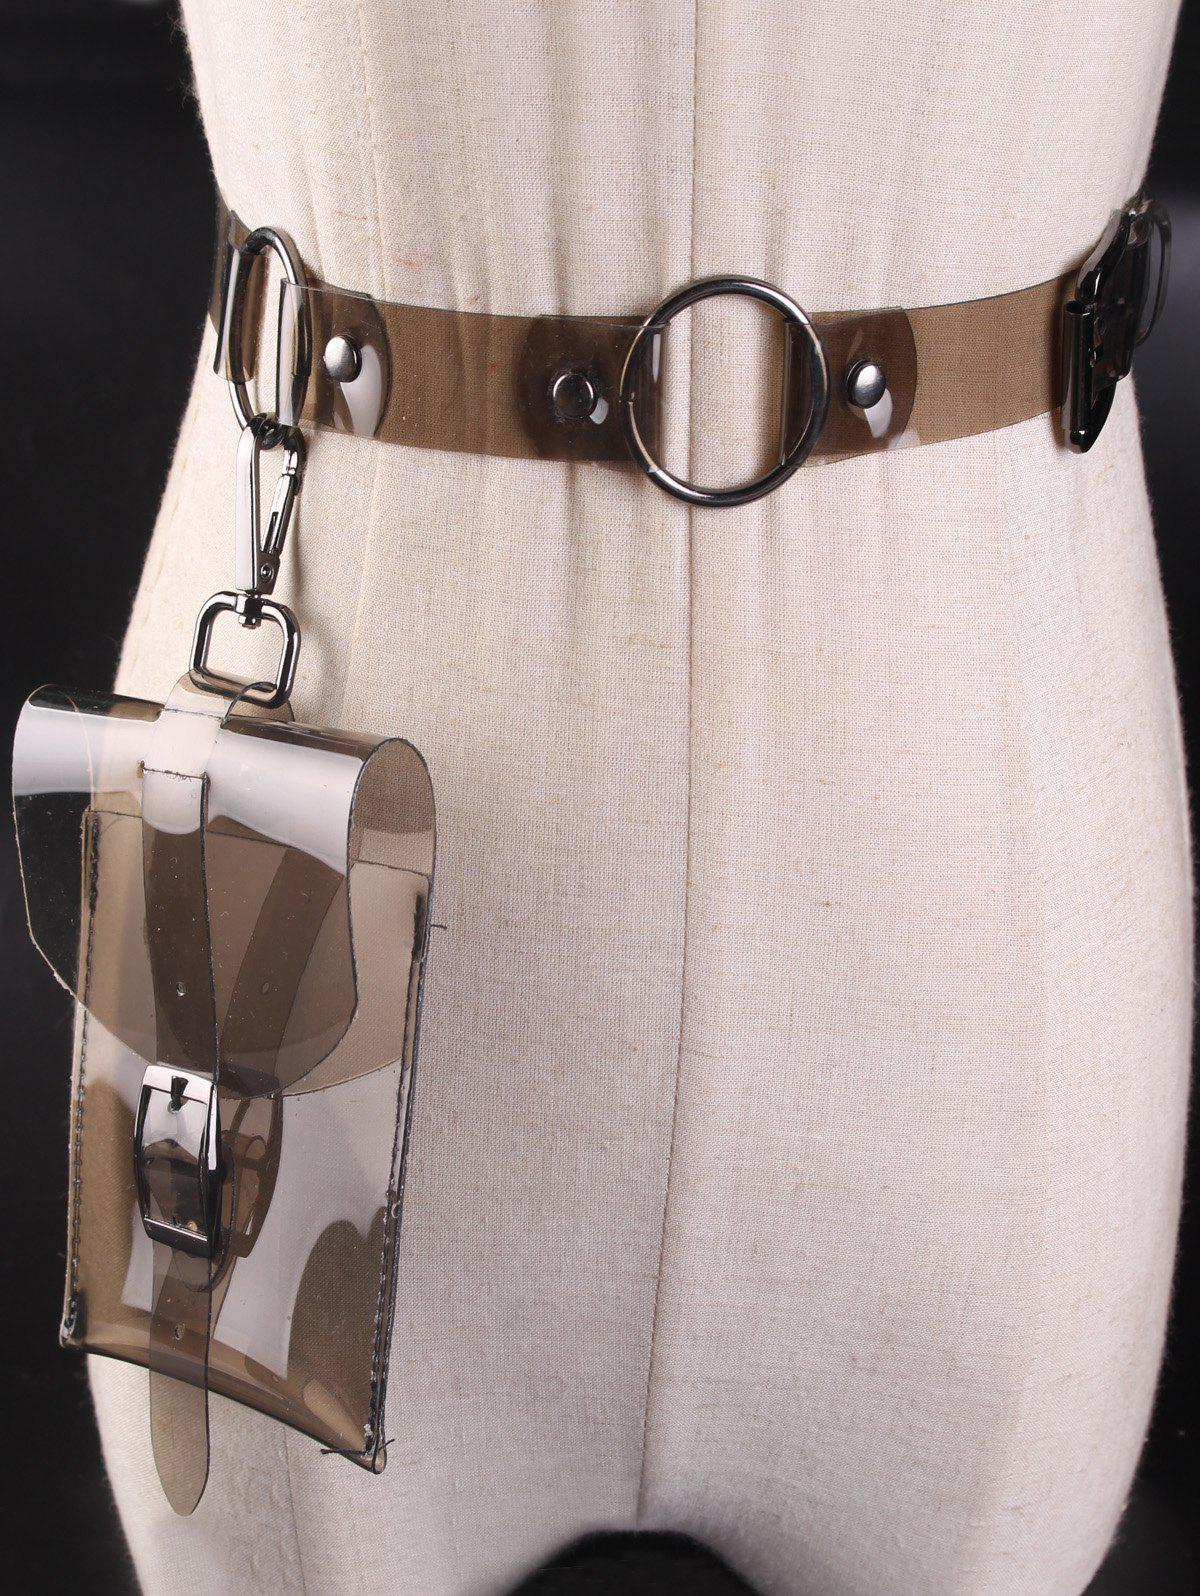 Hot Funny Bag Transparent Plastic Waist Belt